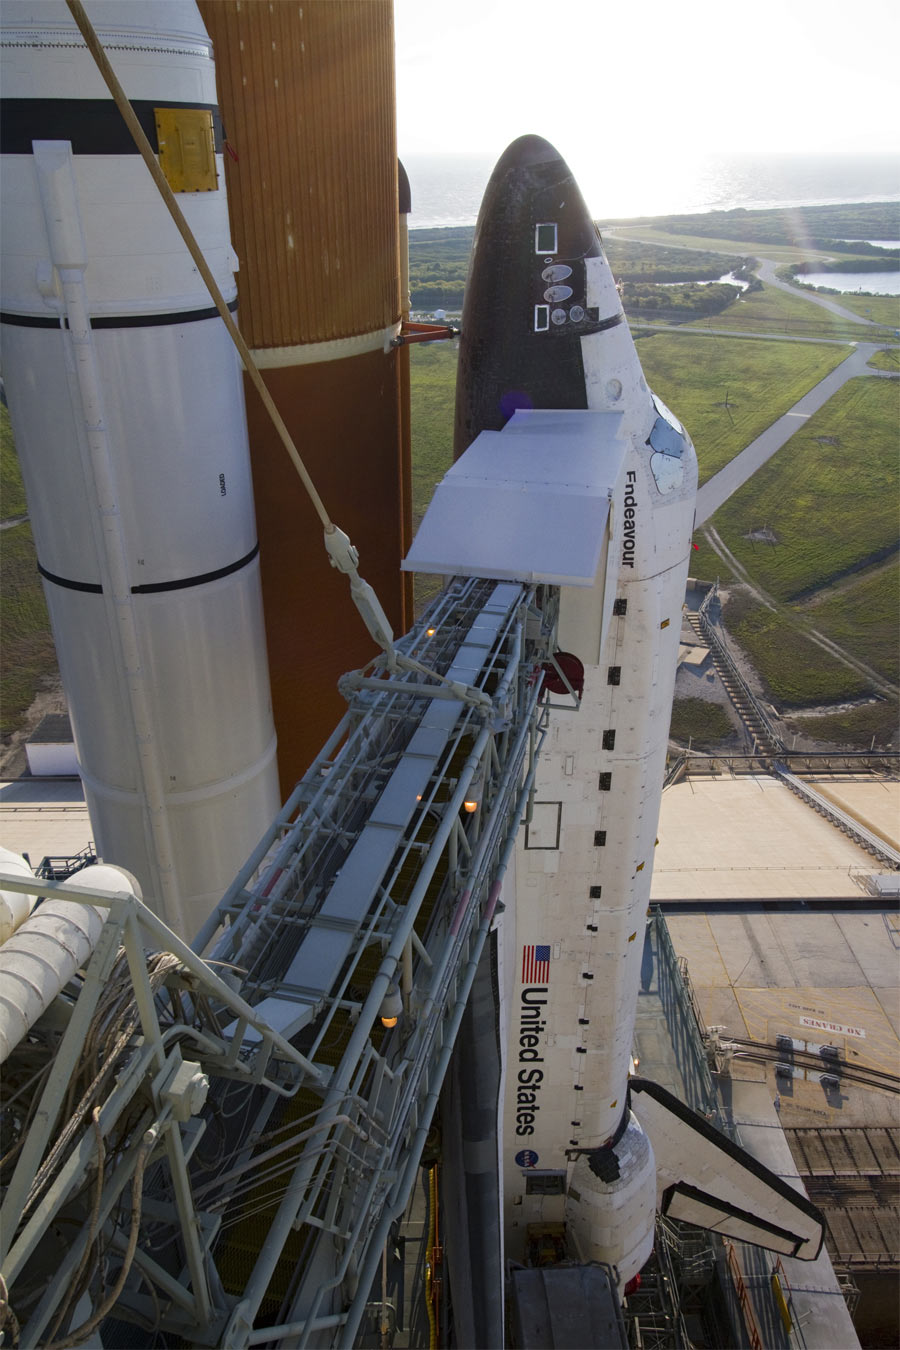 NASA: No Shuttle Launch for Endeavour Until May 16, Earliest